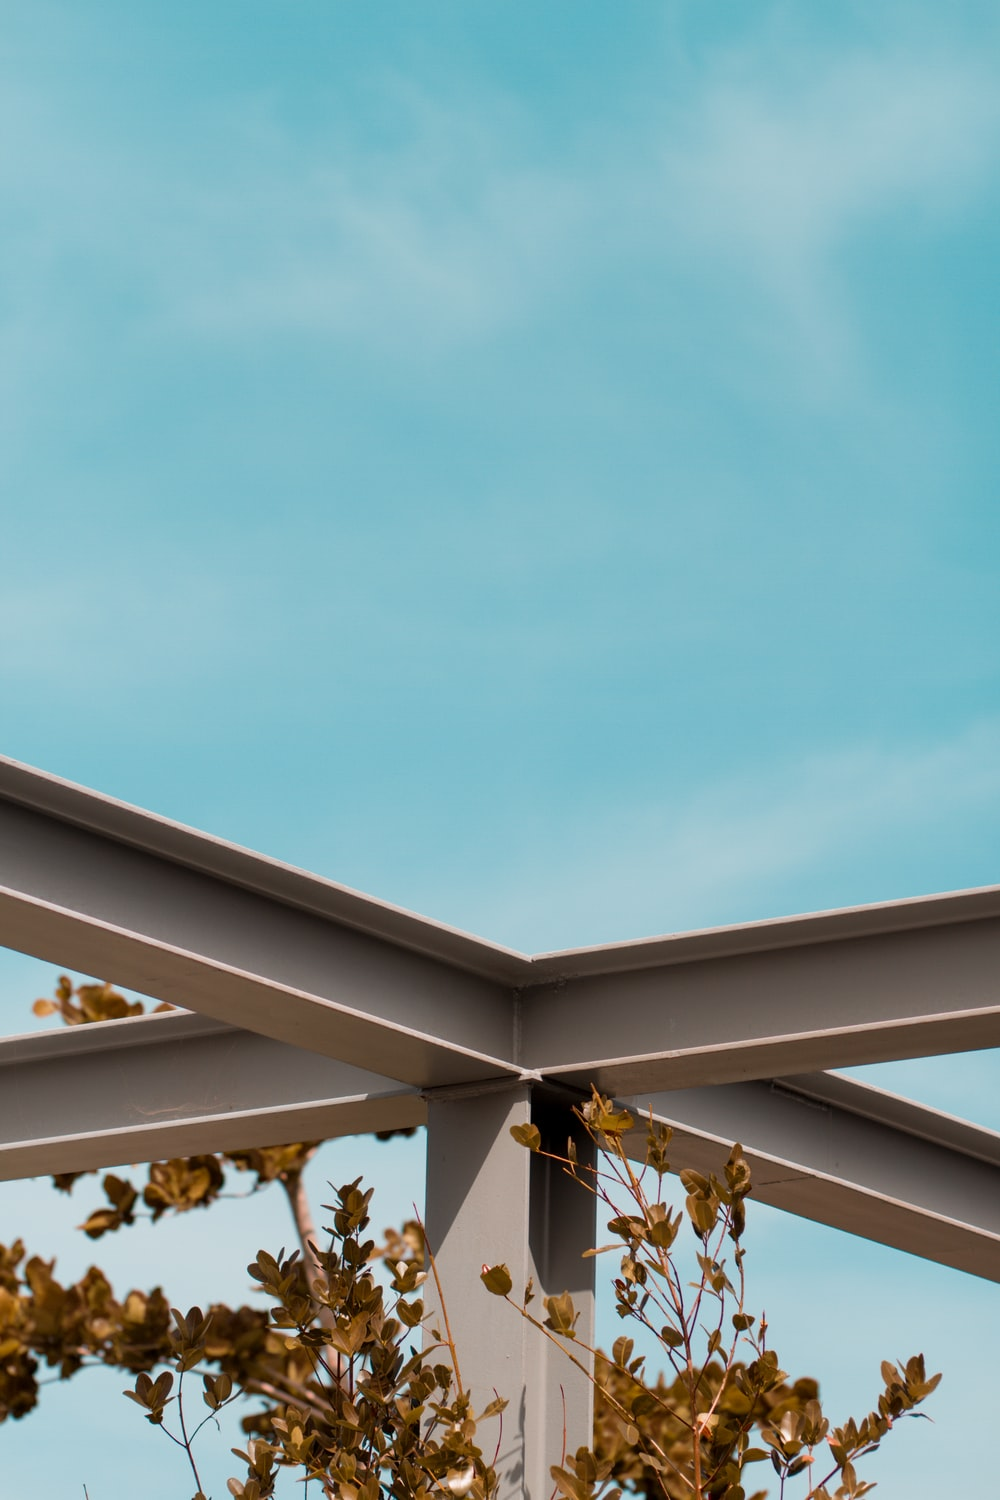 brown and white wooden roof under blue sky during daytime